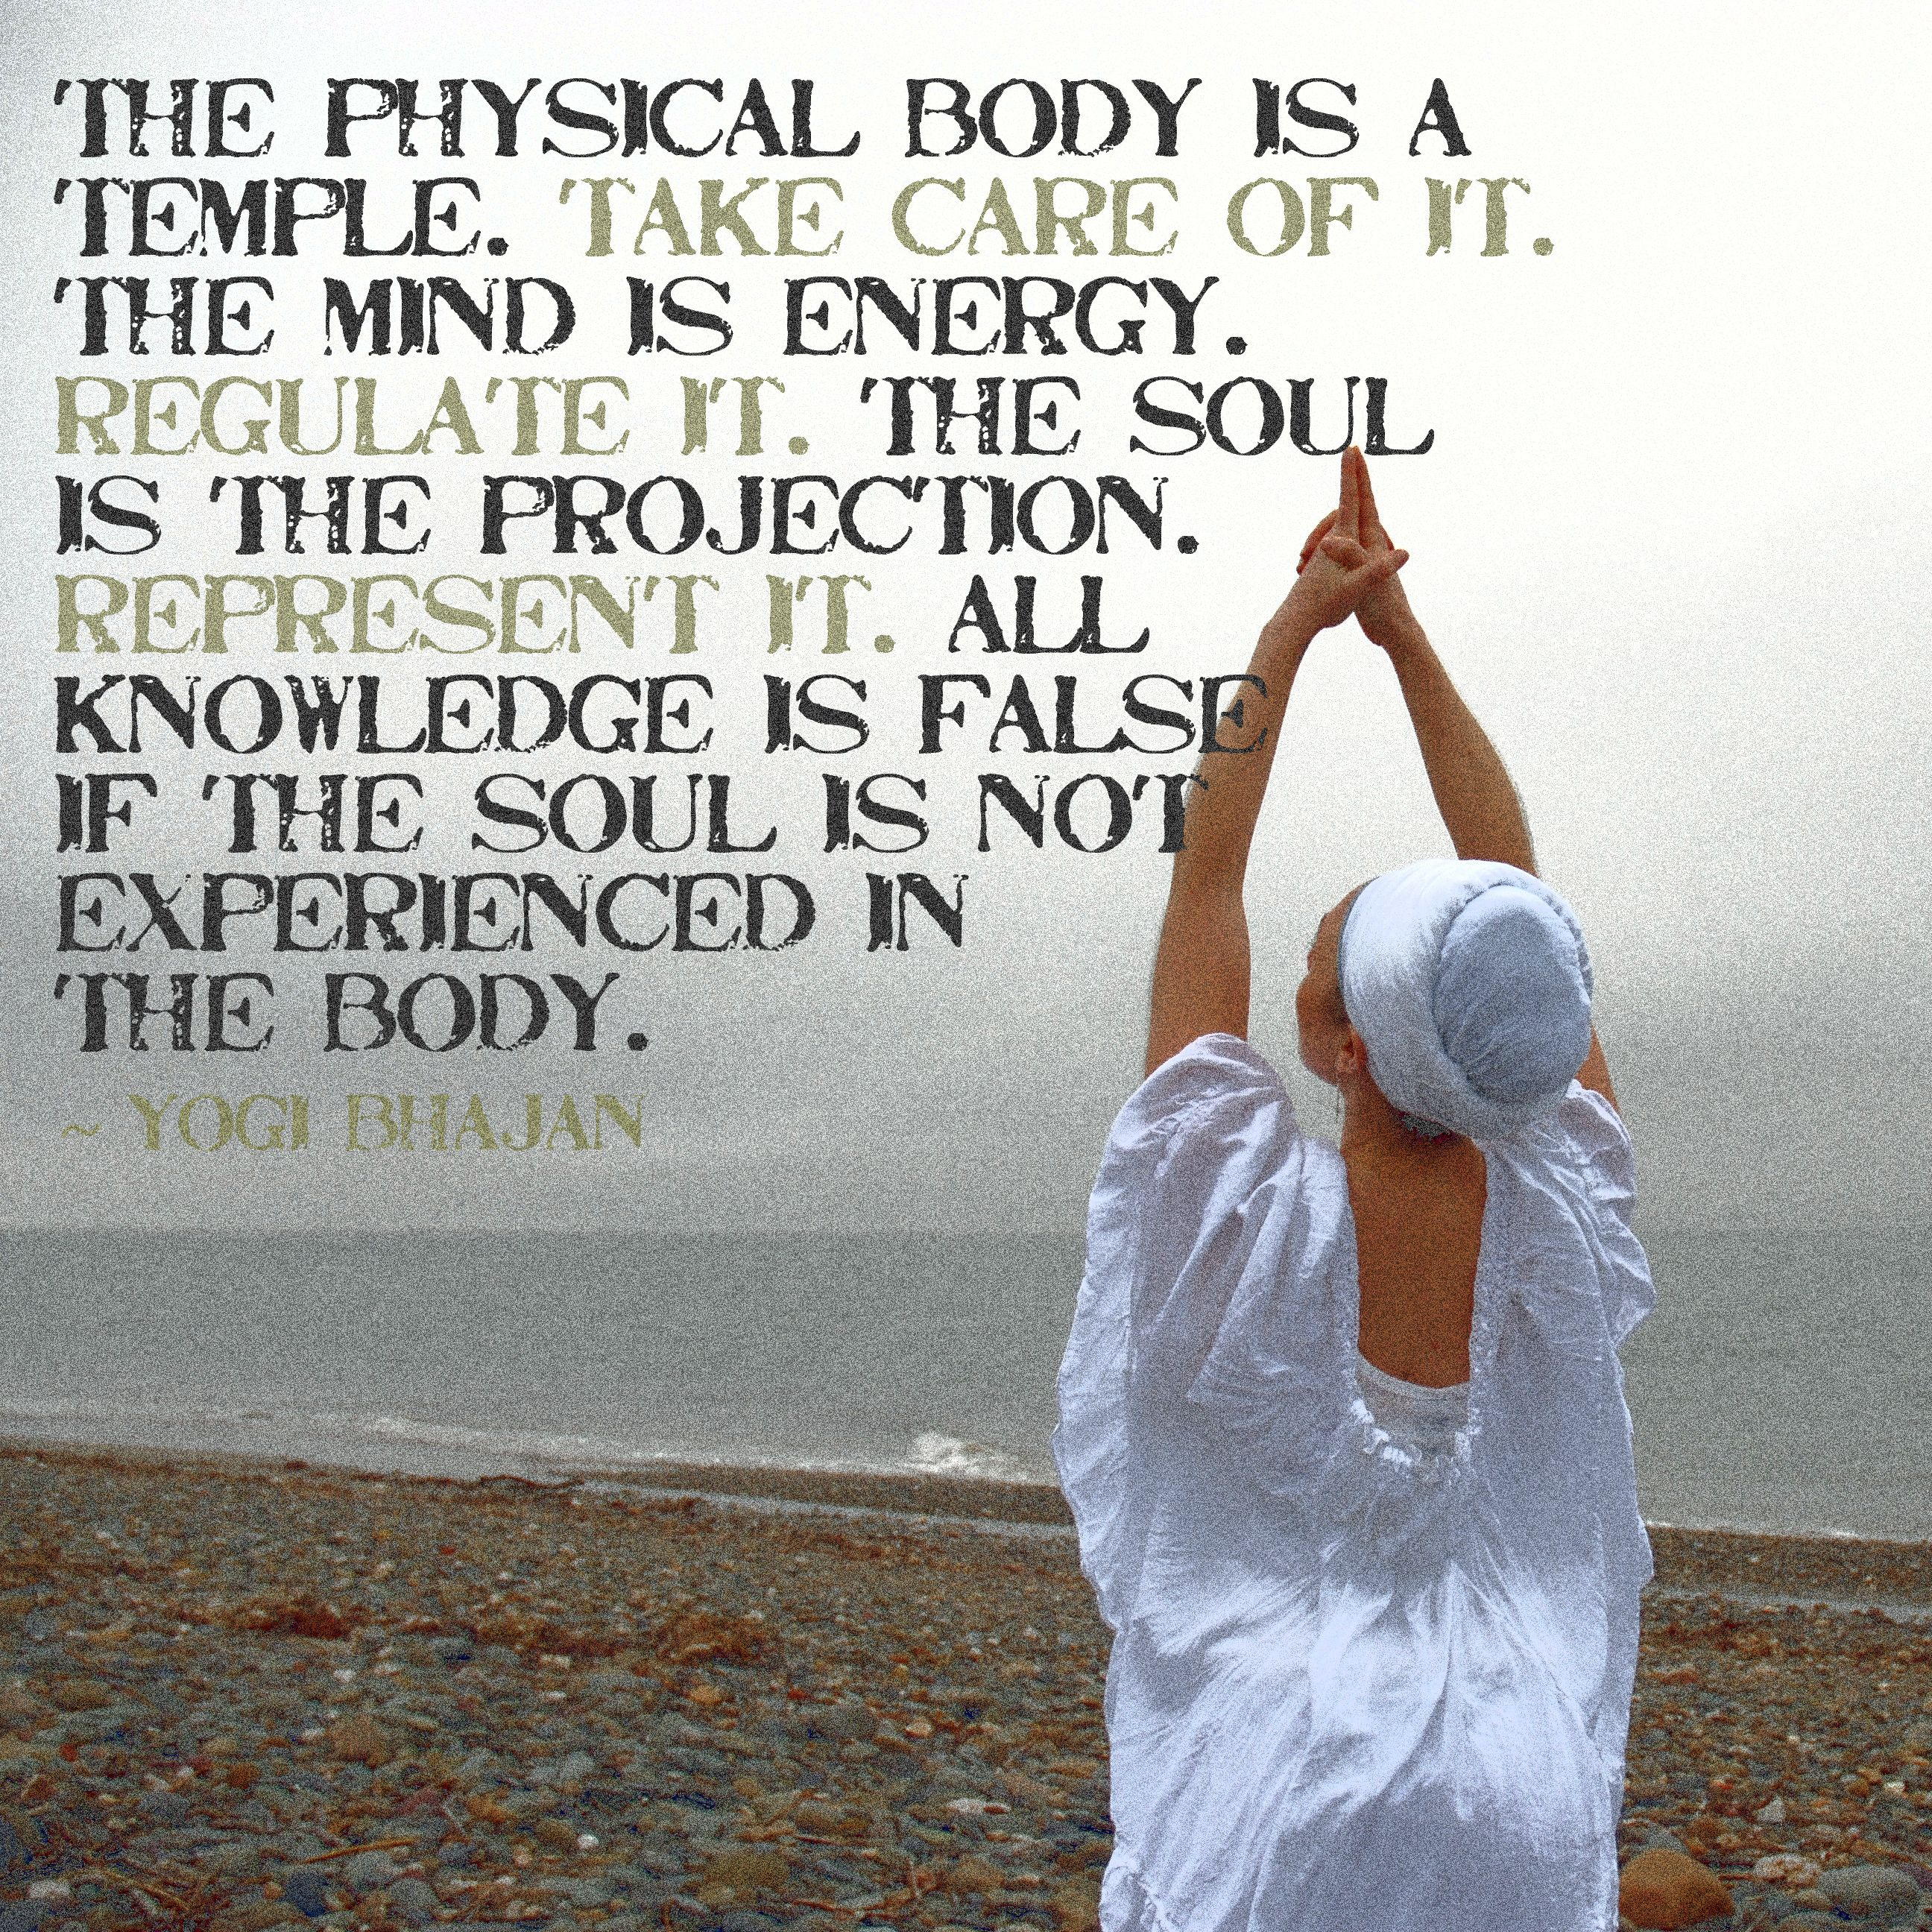 Body Quotes: The Physical Body Is A Temple, Take Care Of It .. The Mind